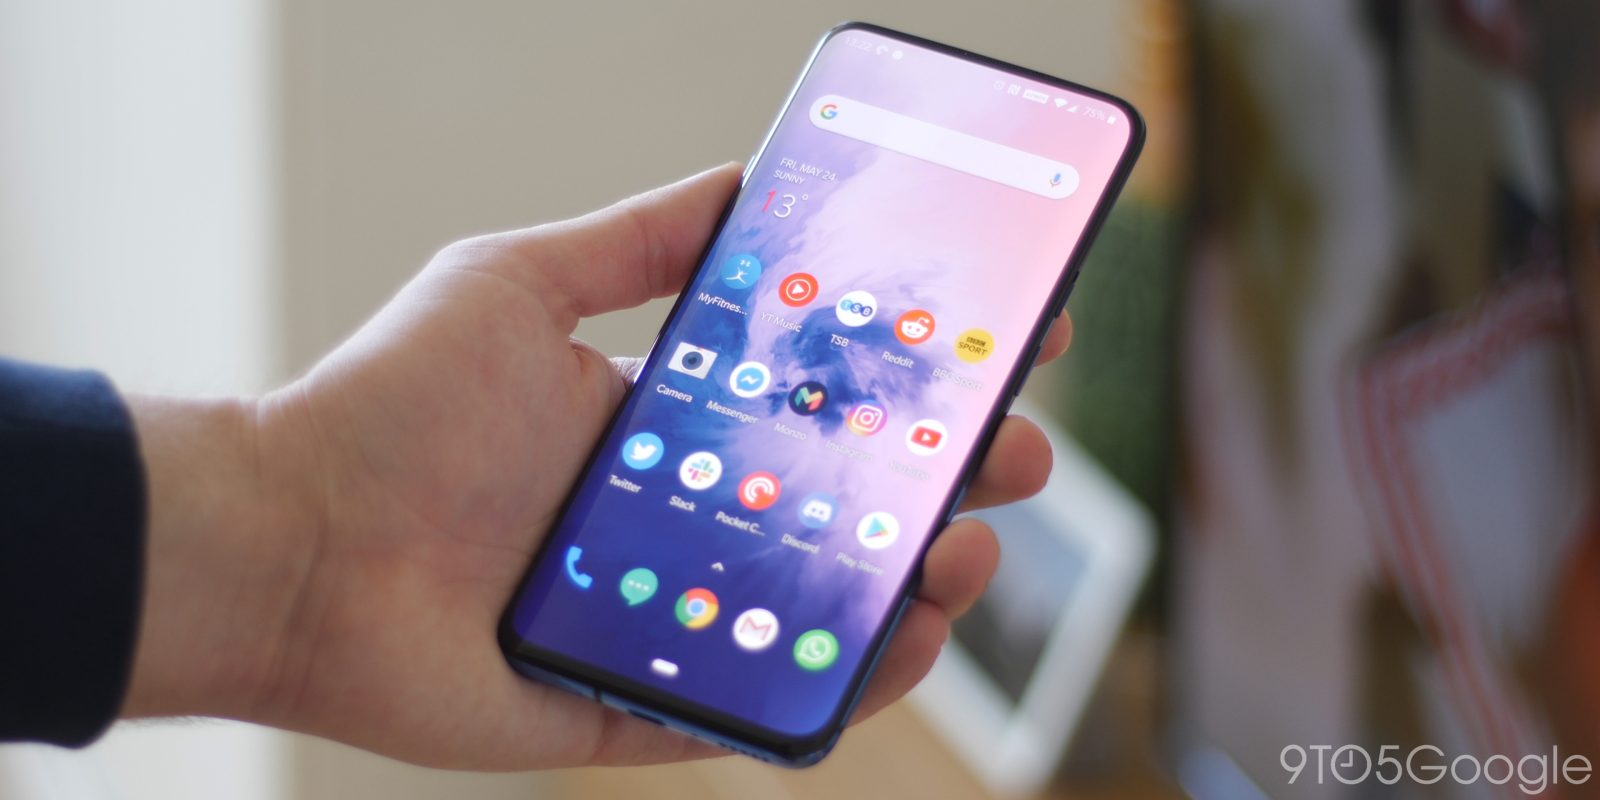 OnePlus 7 Pro 'ghost touch' issue gets a temporary solution - 9to5Google